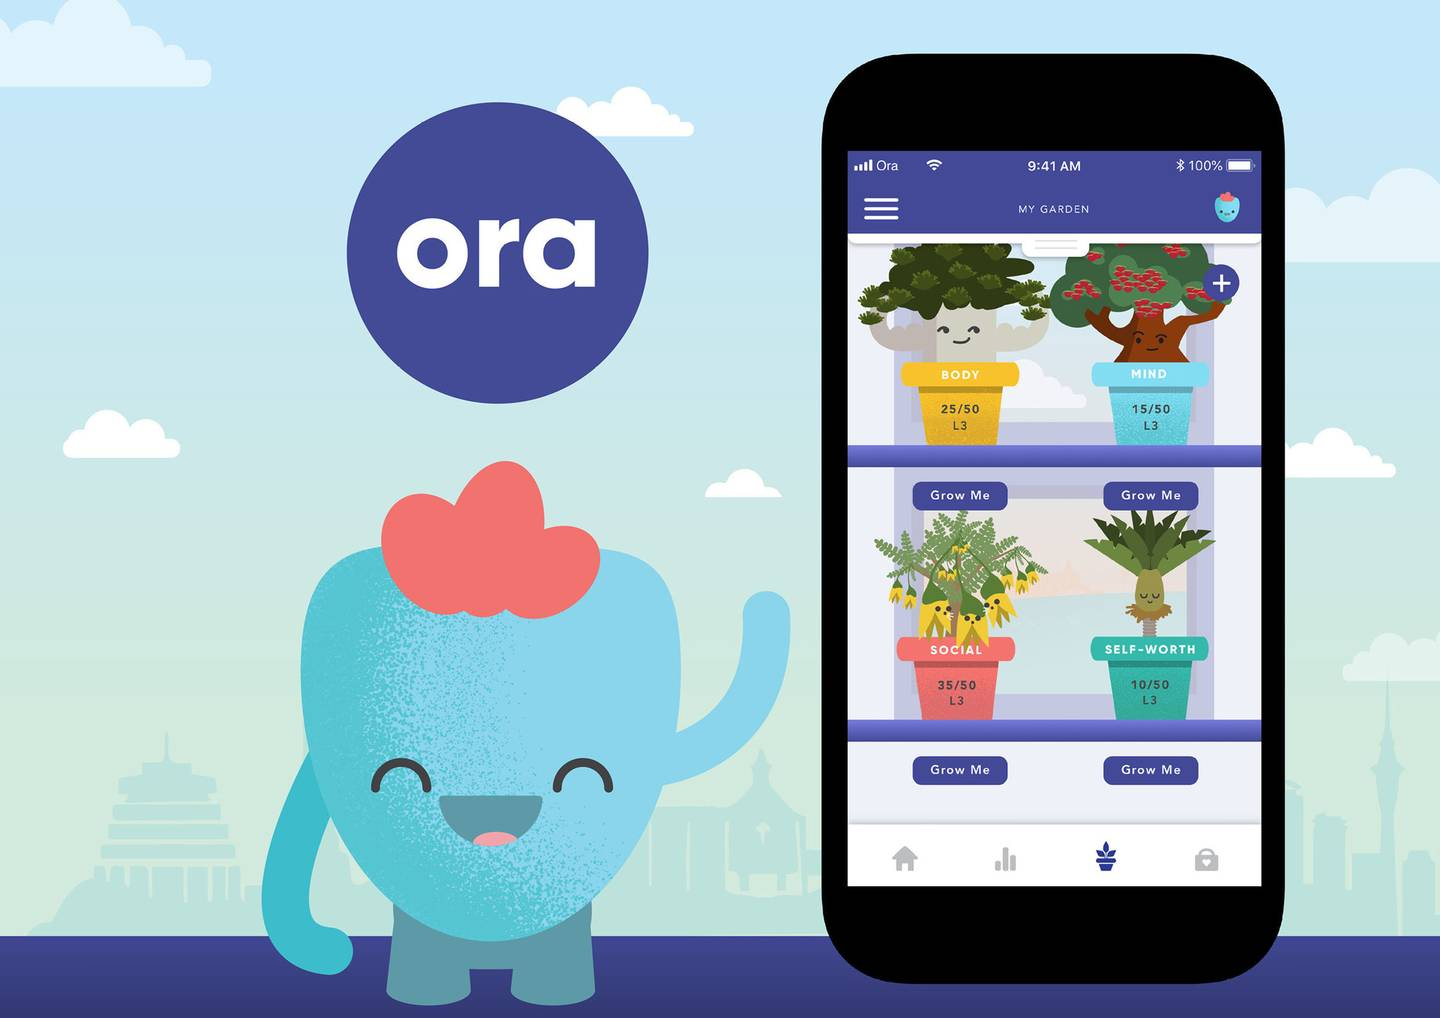 An image of the Ora project